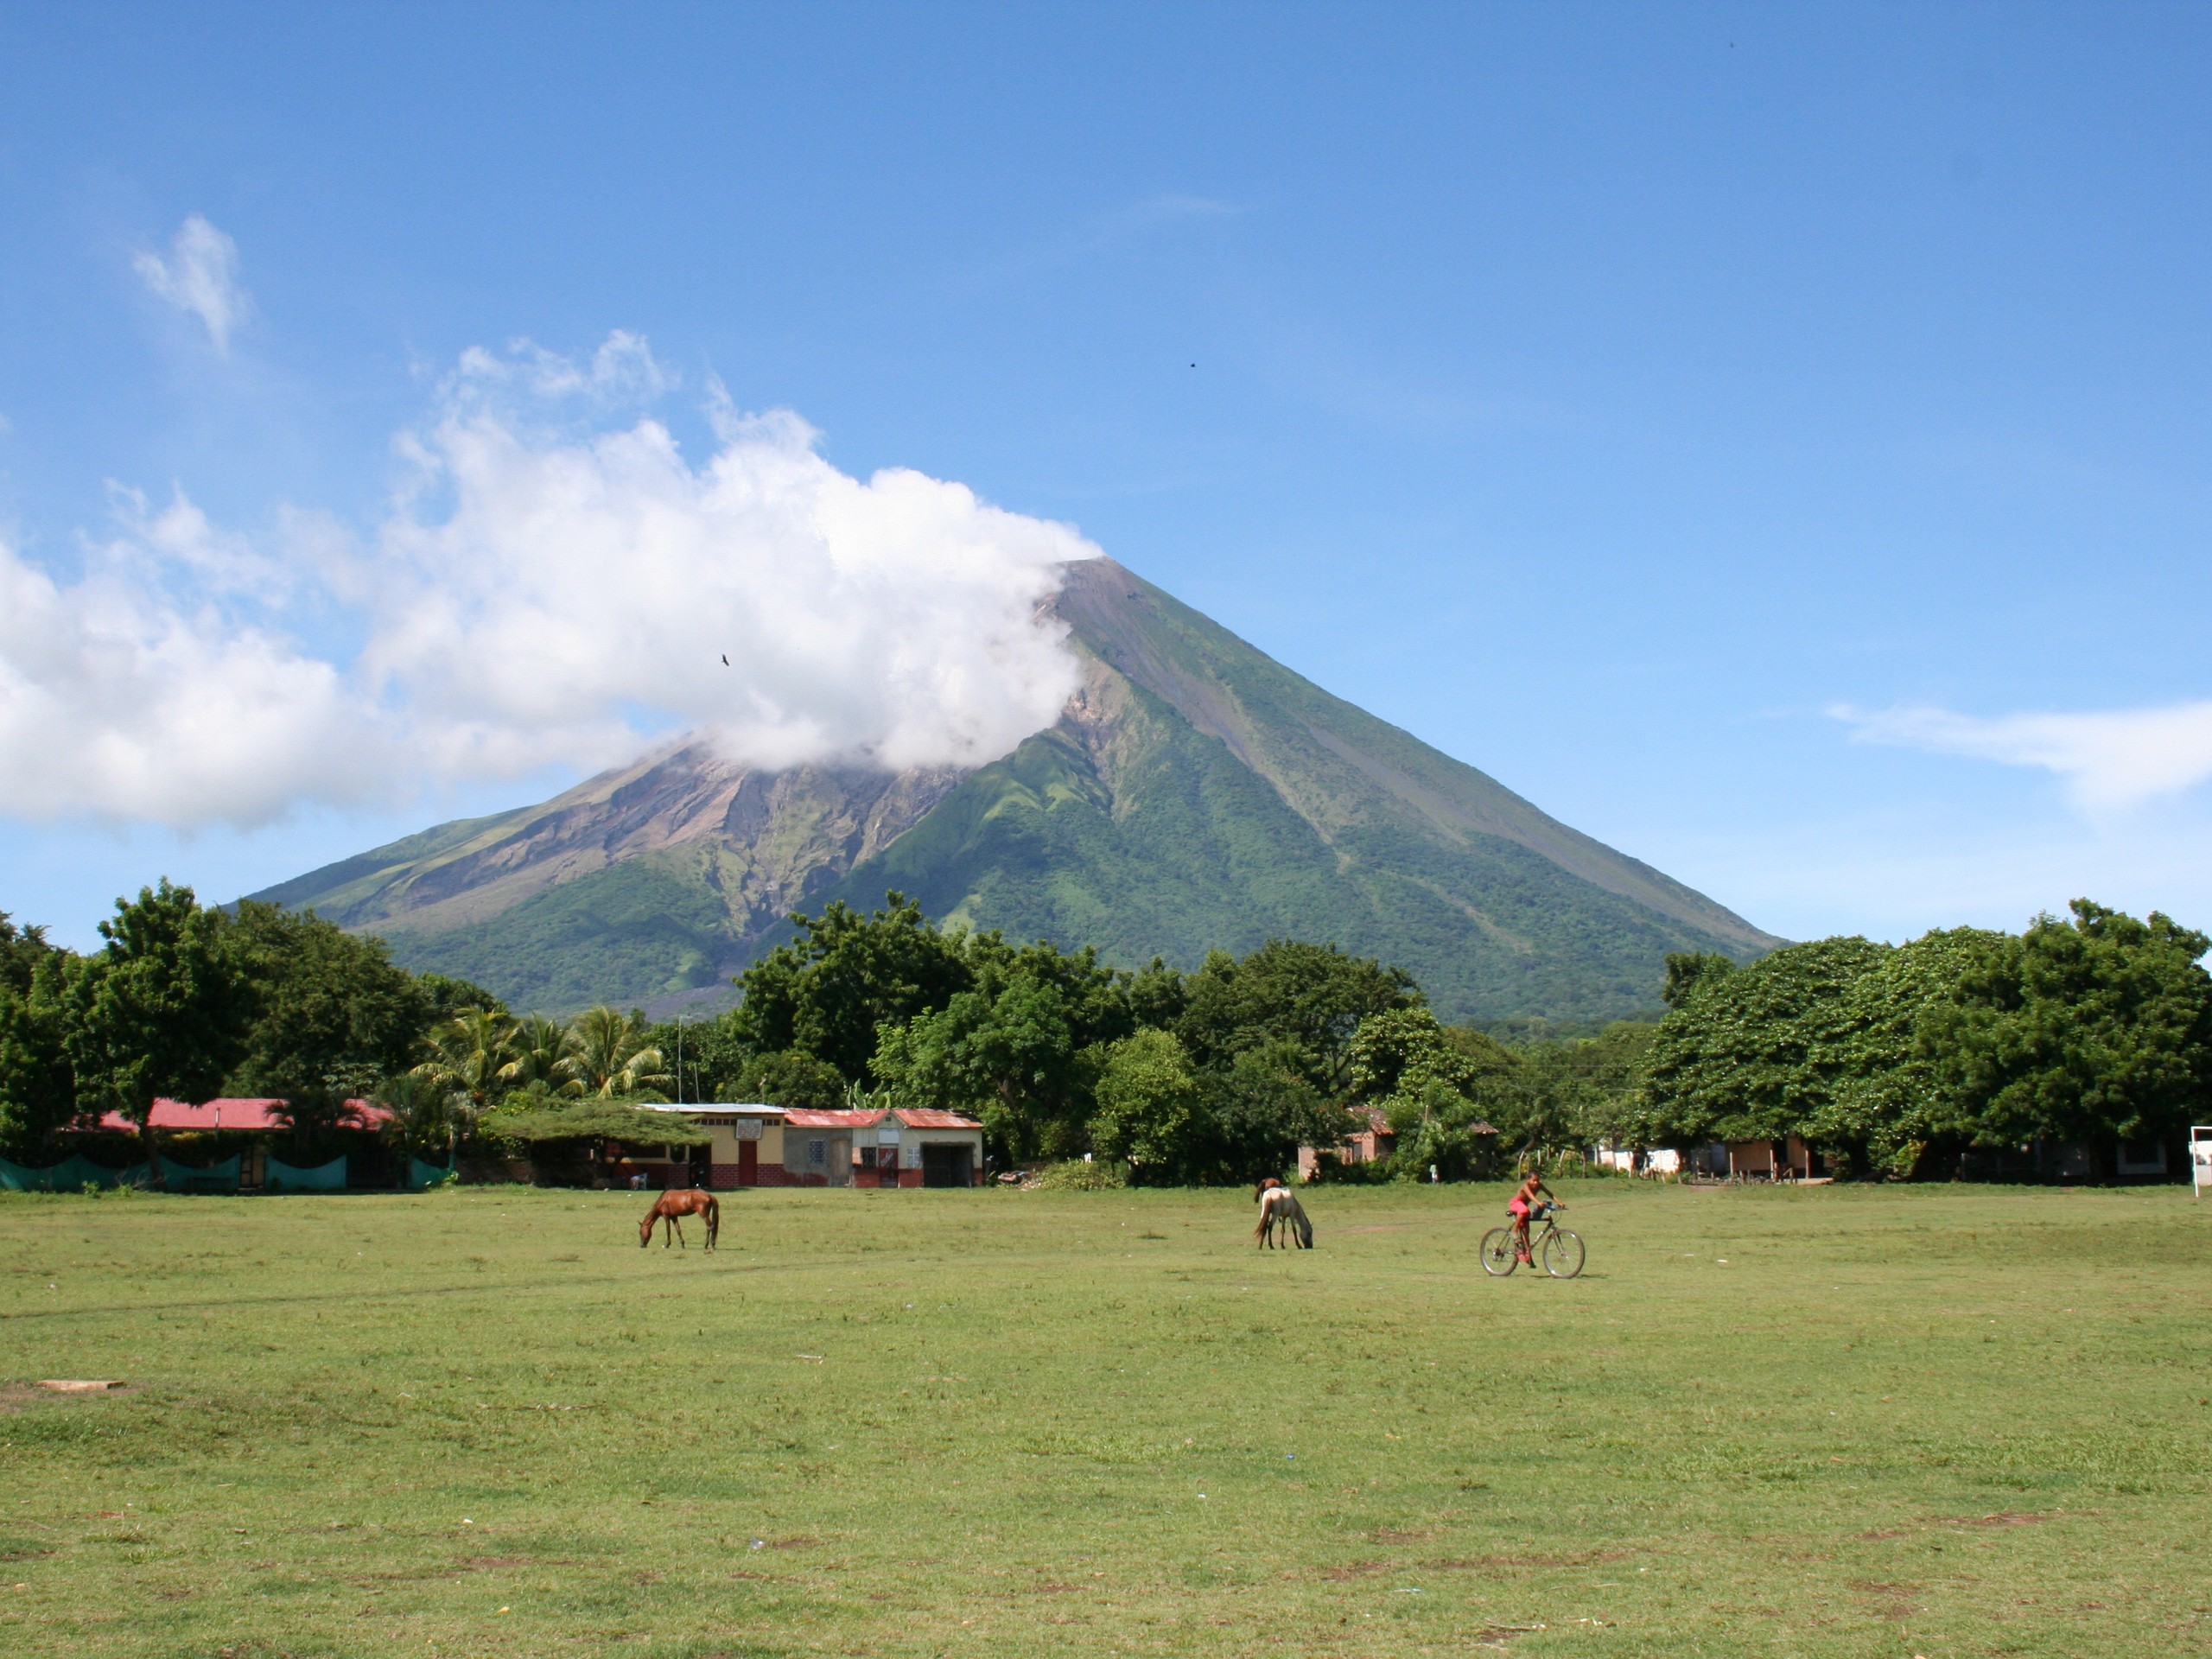 Ometepe -Concepcion Volcano as seen from afar